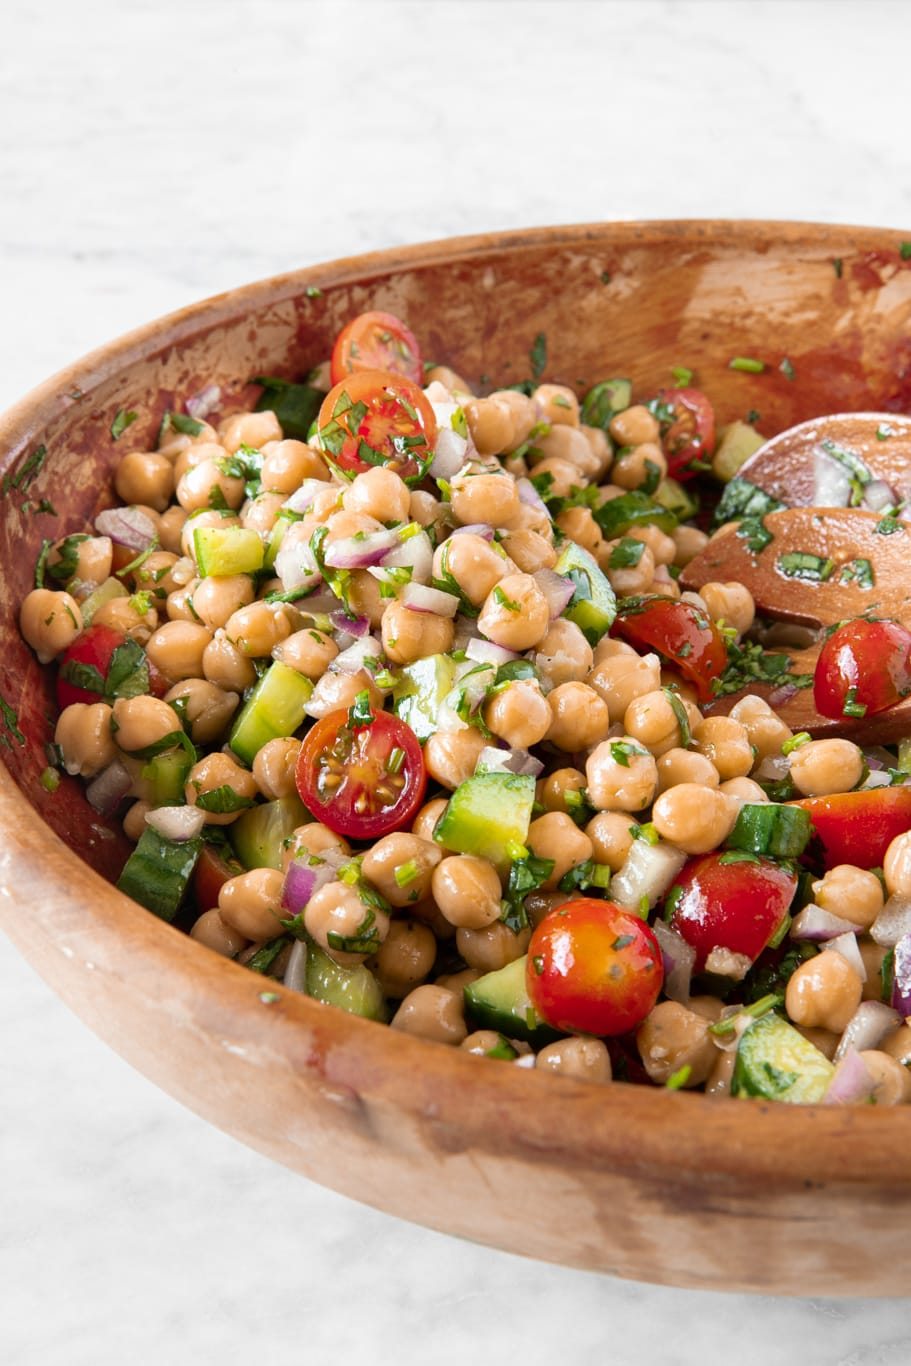 Wooden bowl with Easy Chickpea Salad With Tomatoes and Cucumbers